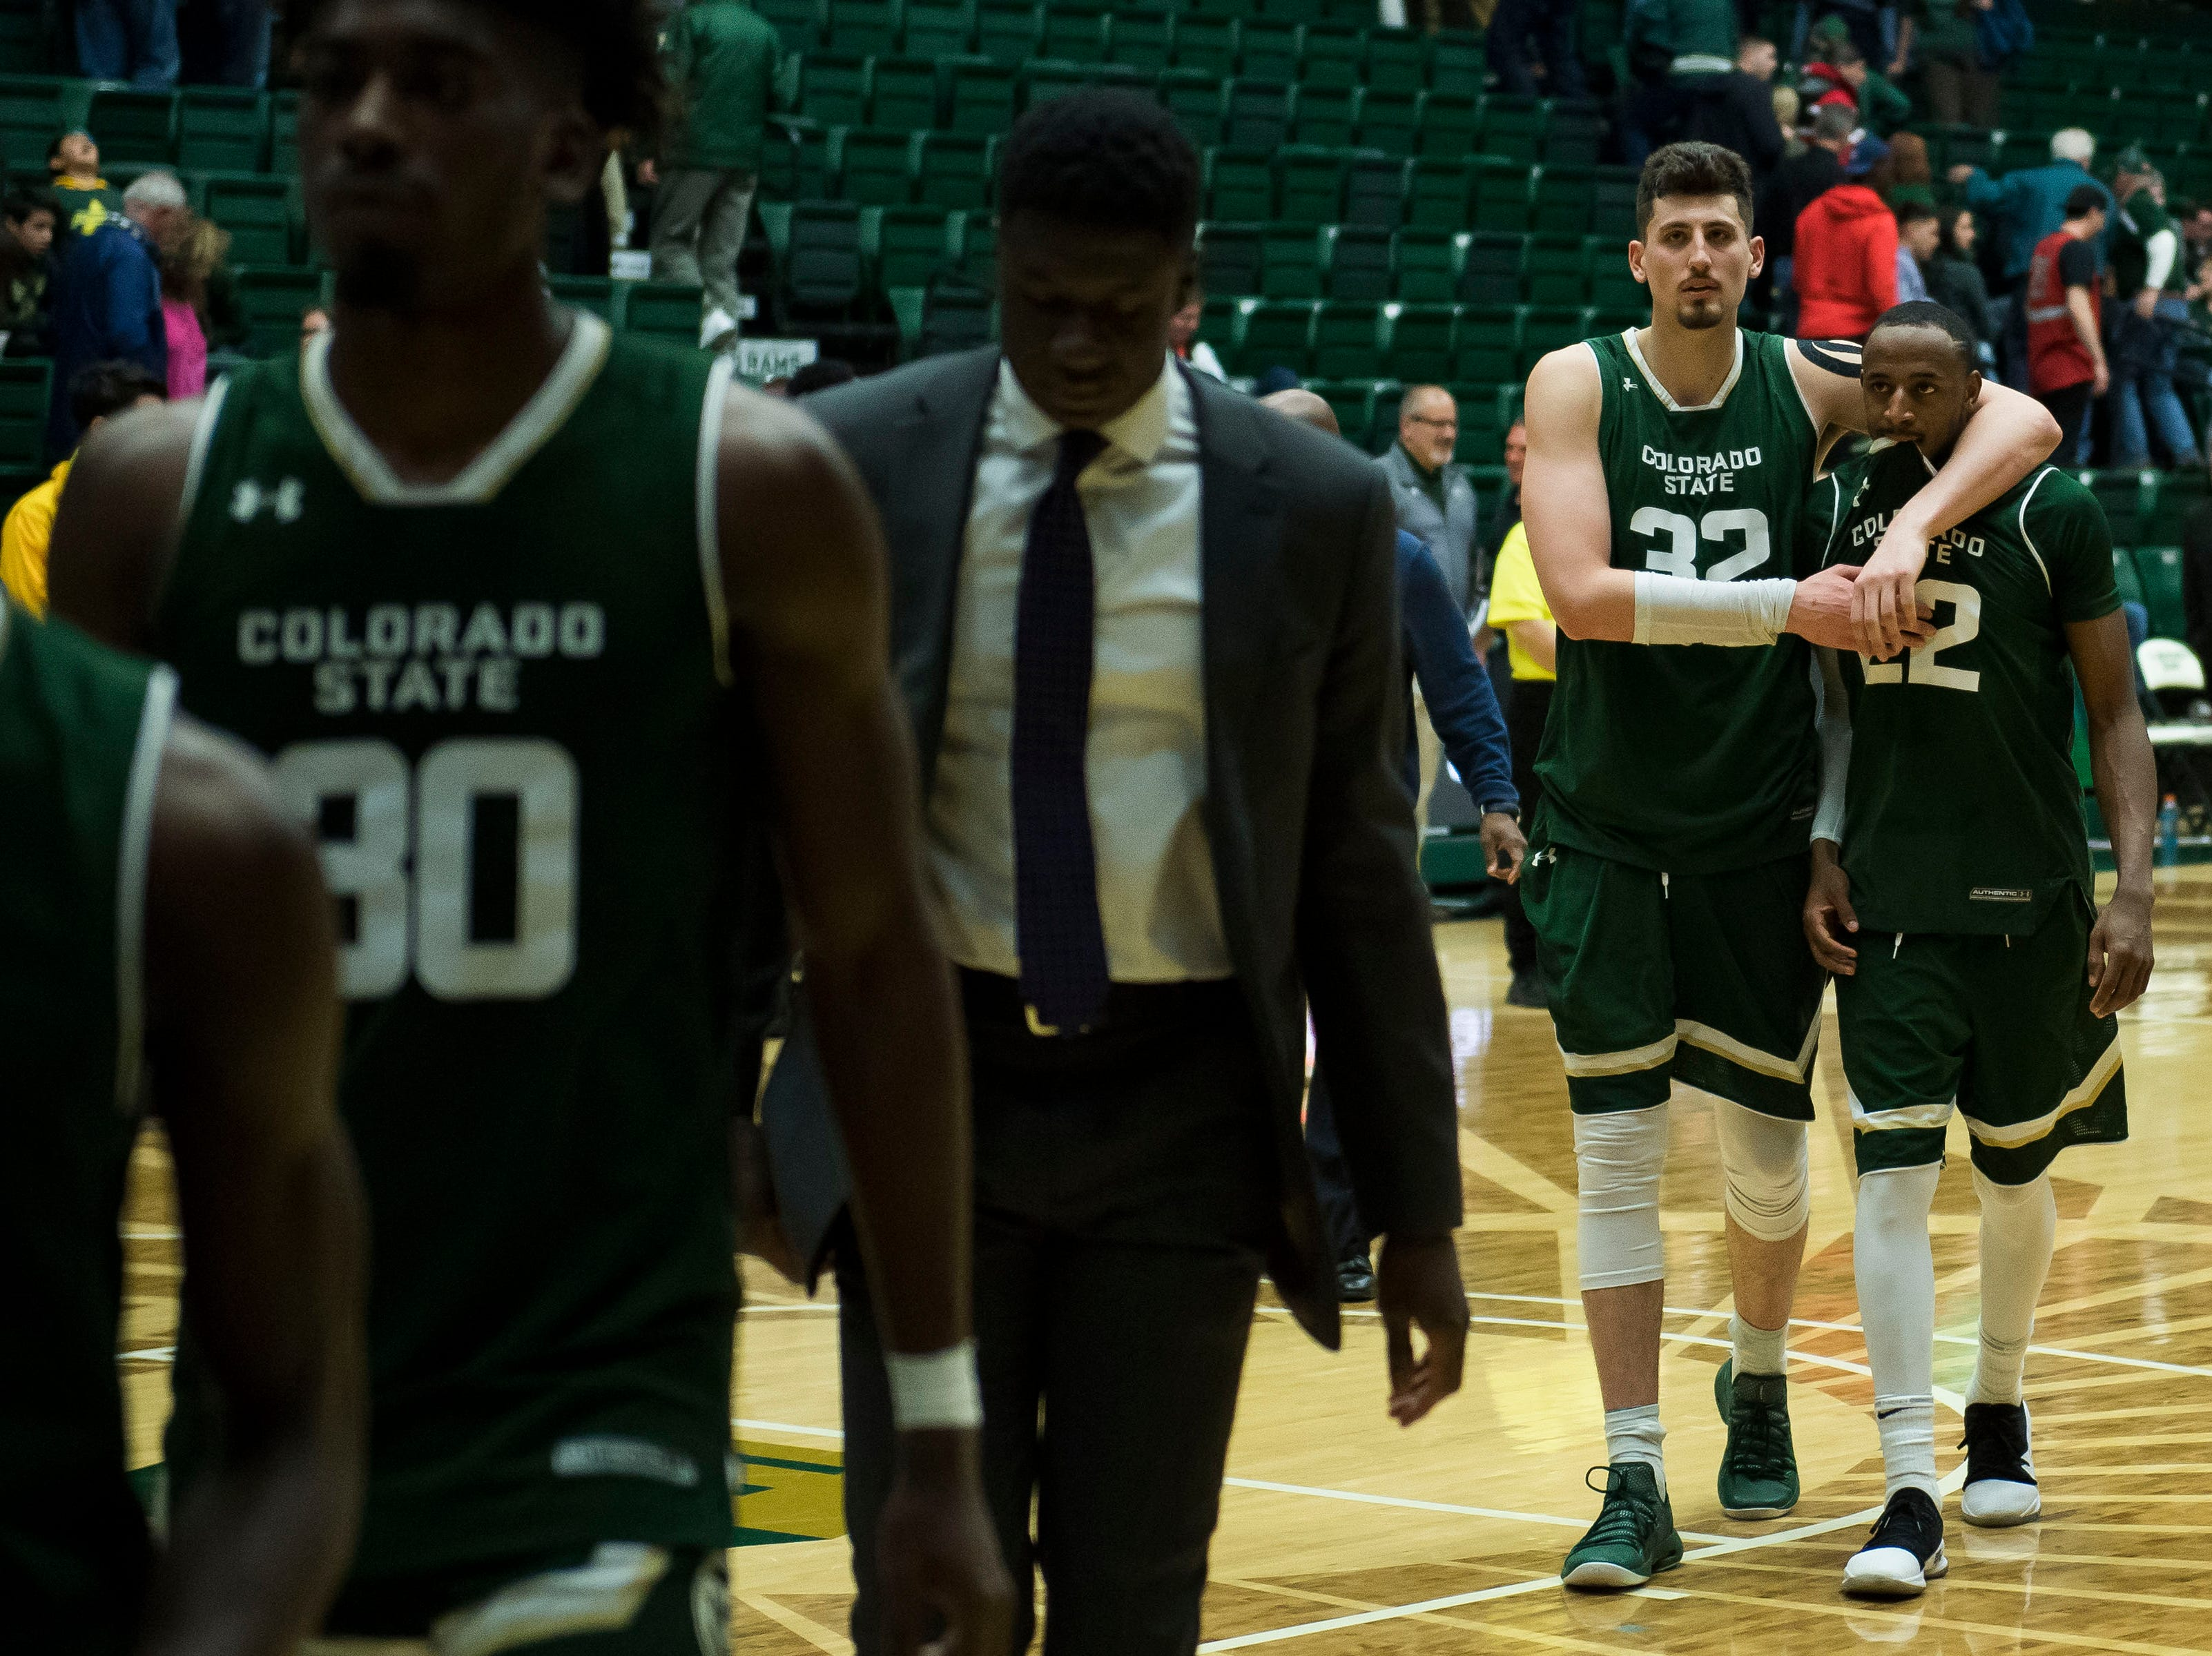 Colorado State University junior center Nico Carvacho (32) walks off court with senior guard J.D. Paige (22) after a 65-60 loss to University of Nevada, Las Vegas on Saturday, March 9, 2019, at Moby Arena in Fort Collins, Colo.